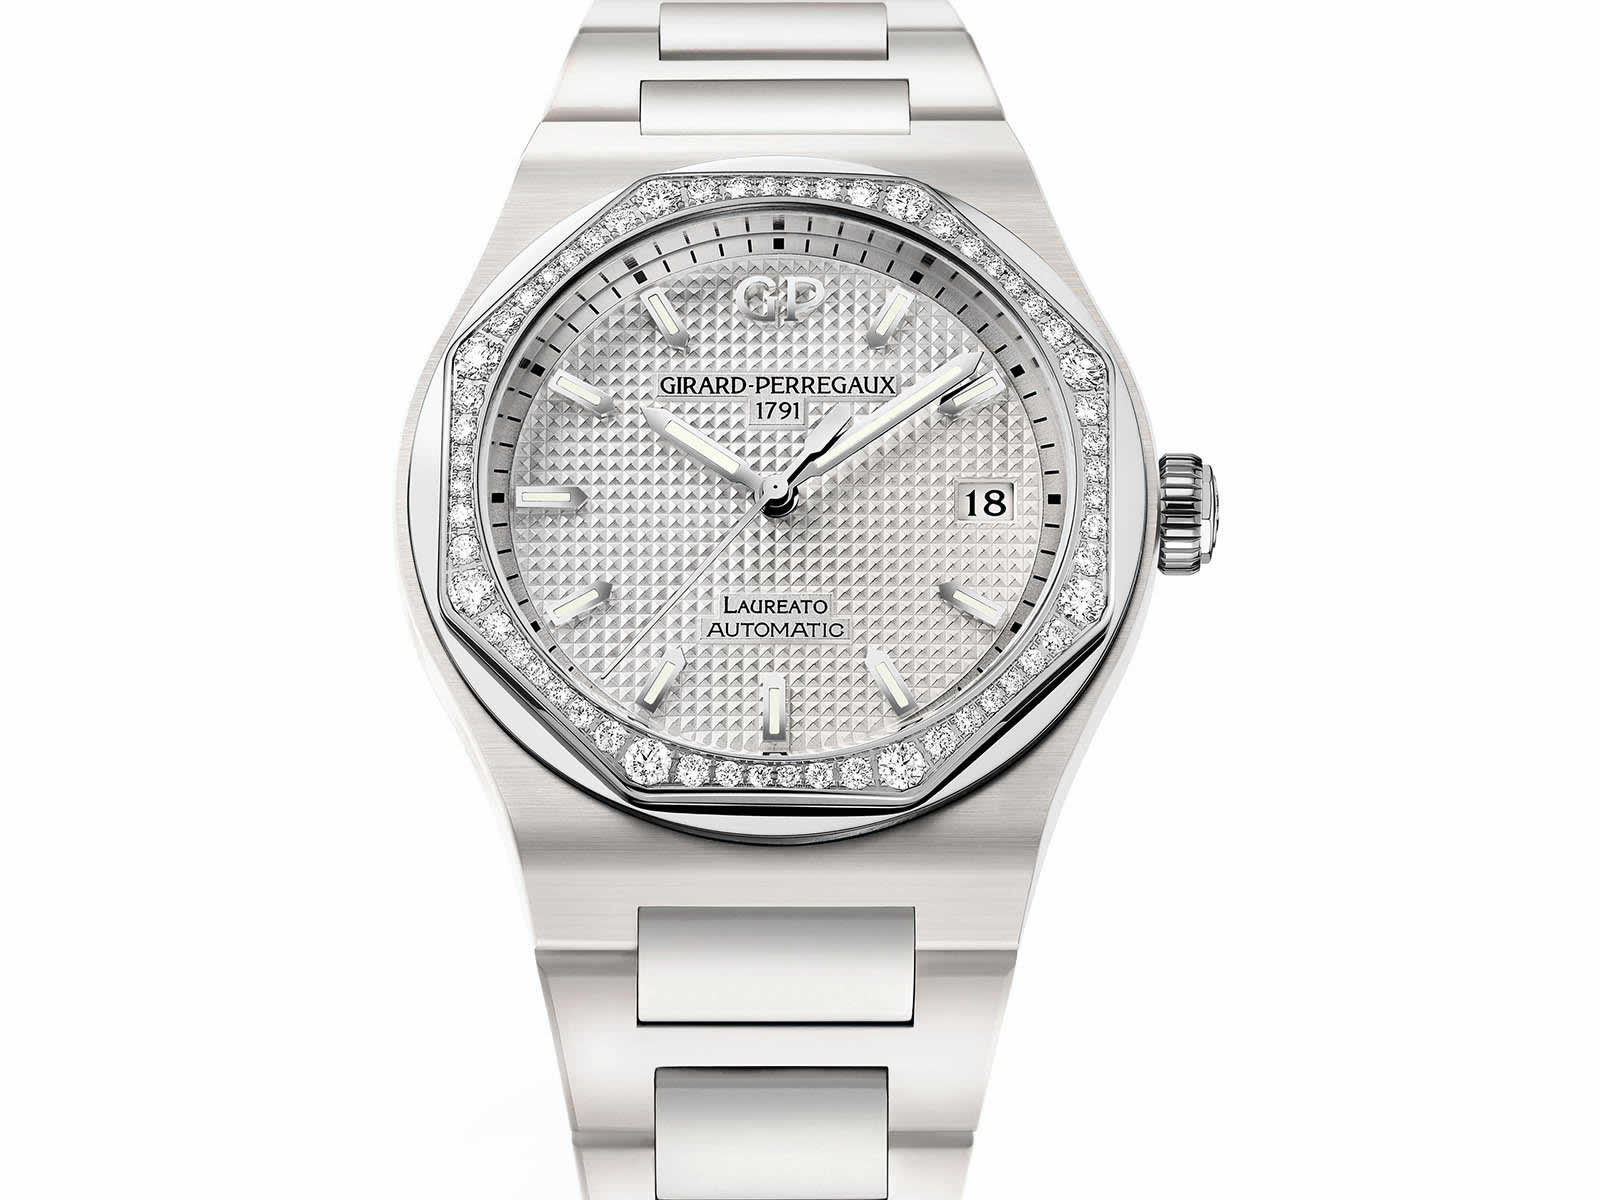 Girard-Perregaux-Laureato-38mm-White-Ceramic-3.jpg